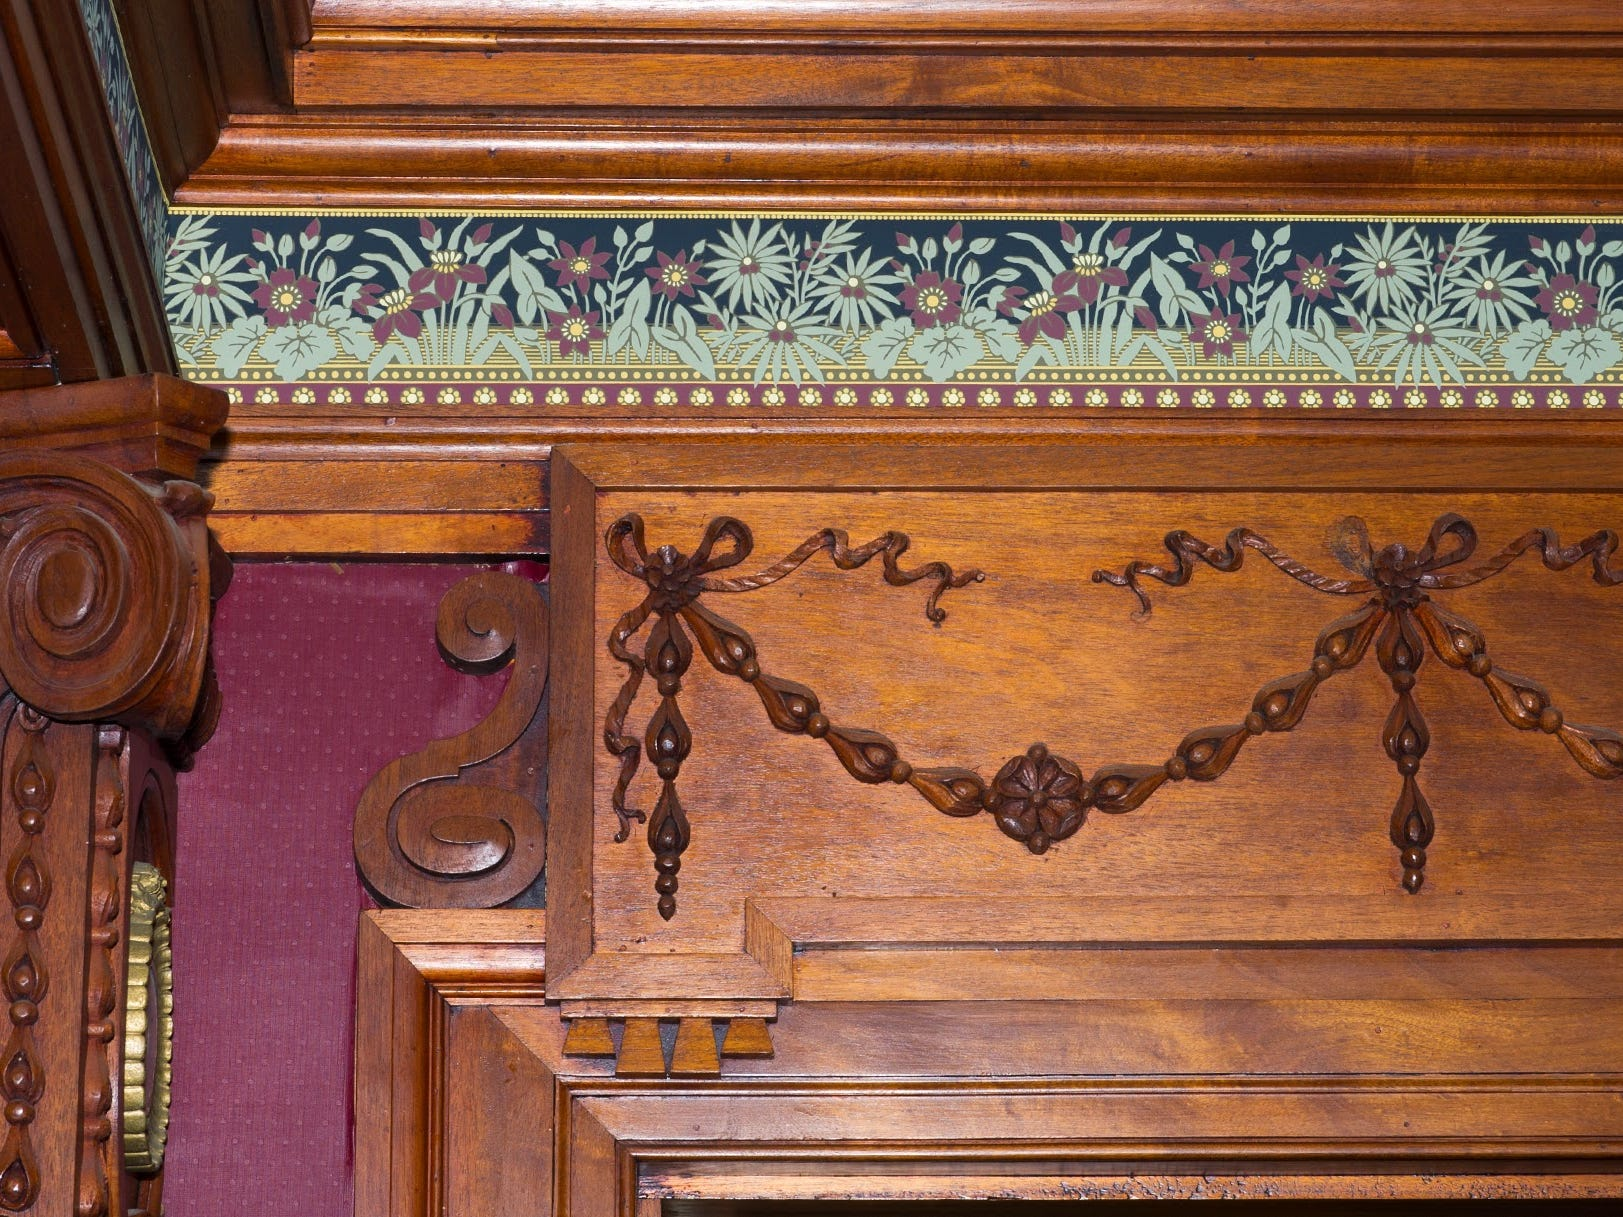 Carved and paneled wood surrounds the interior of the Emig Mansion dining room.